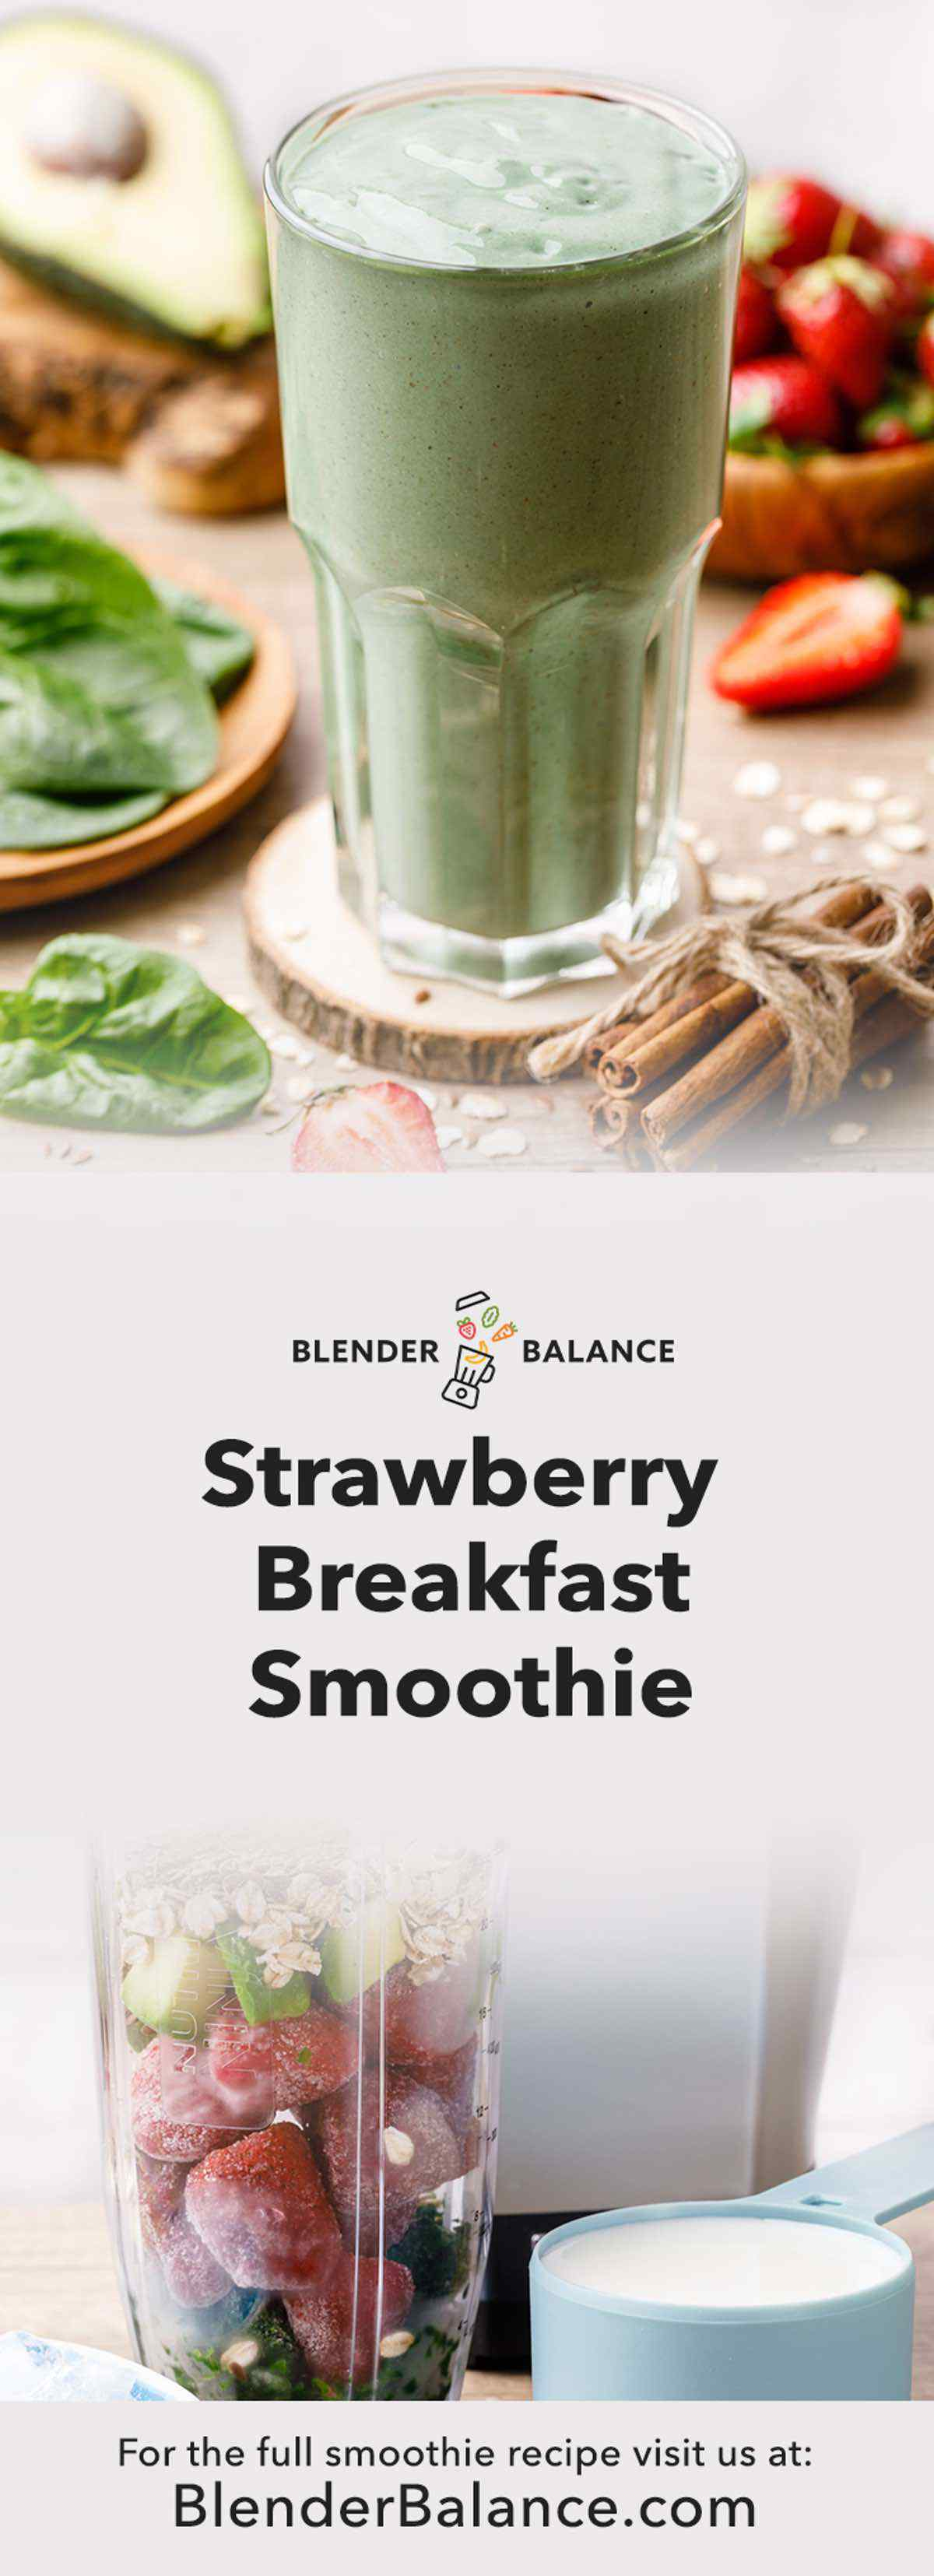 Oatmeal Strawberry Breakfast Smoothie